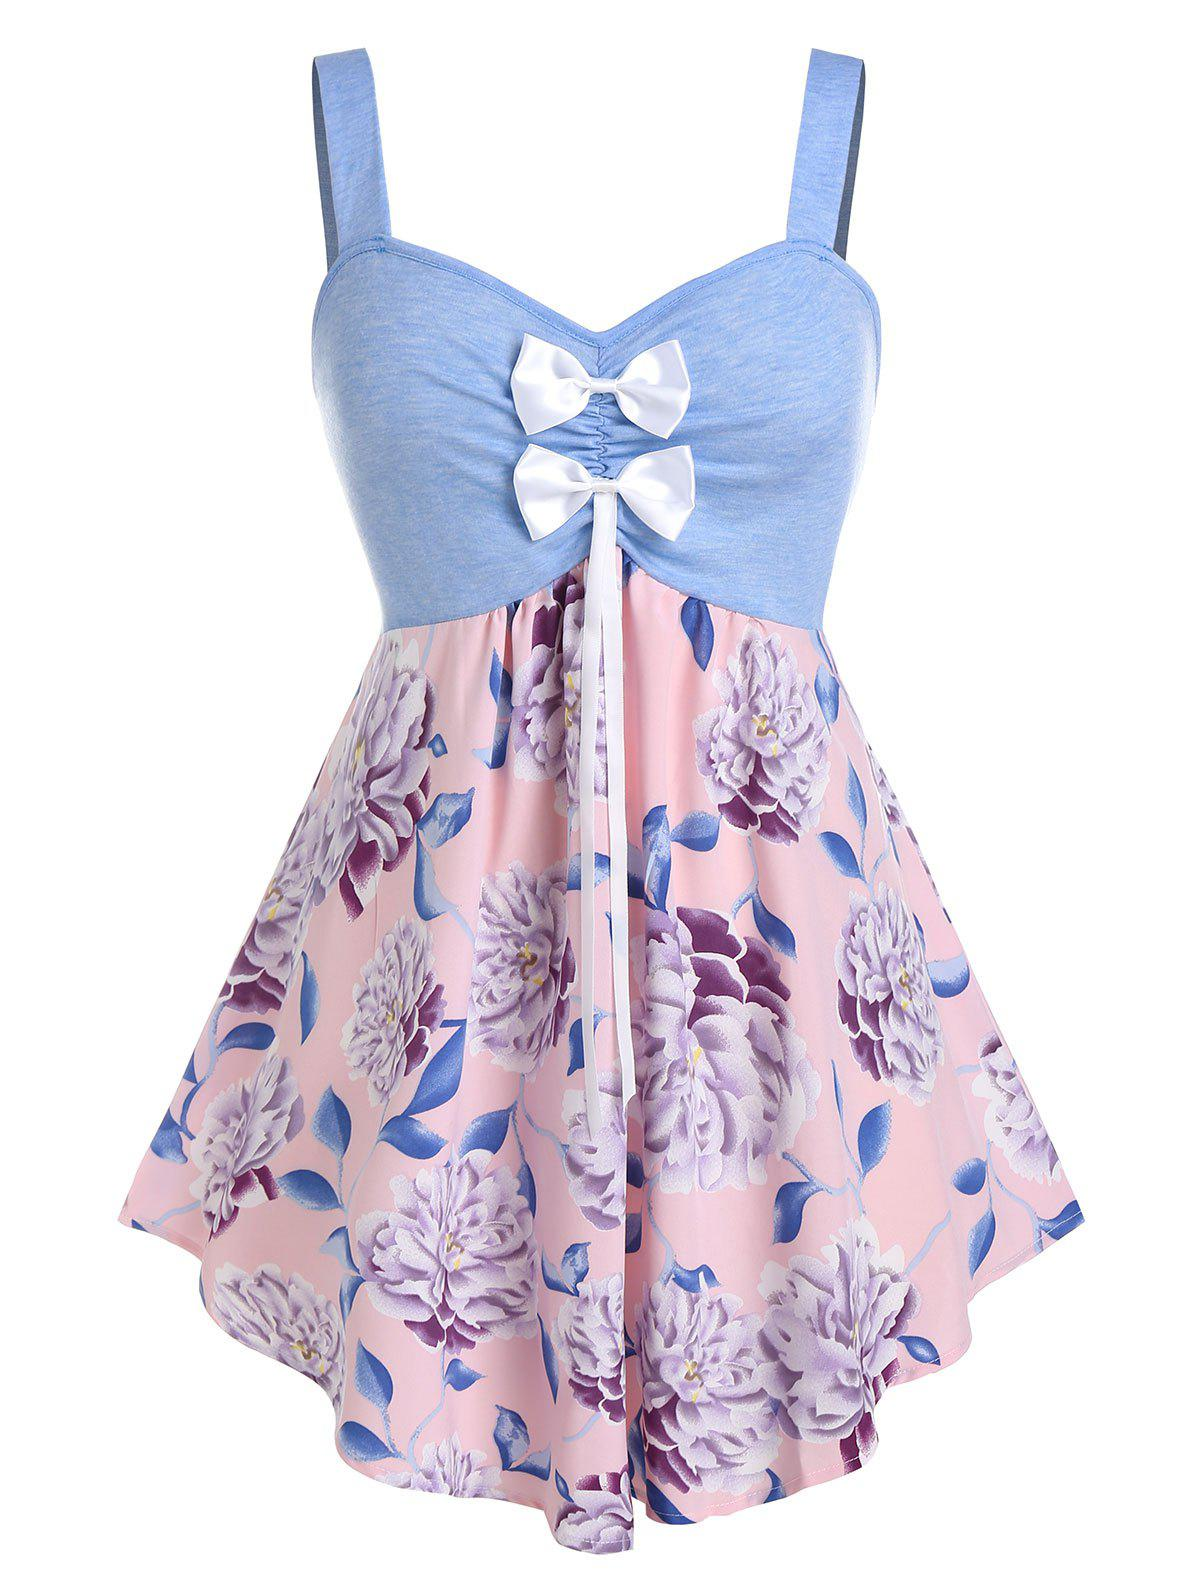 Plus Size Flower Print Bowknot Backless Curved Tank Top фото